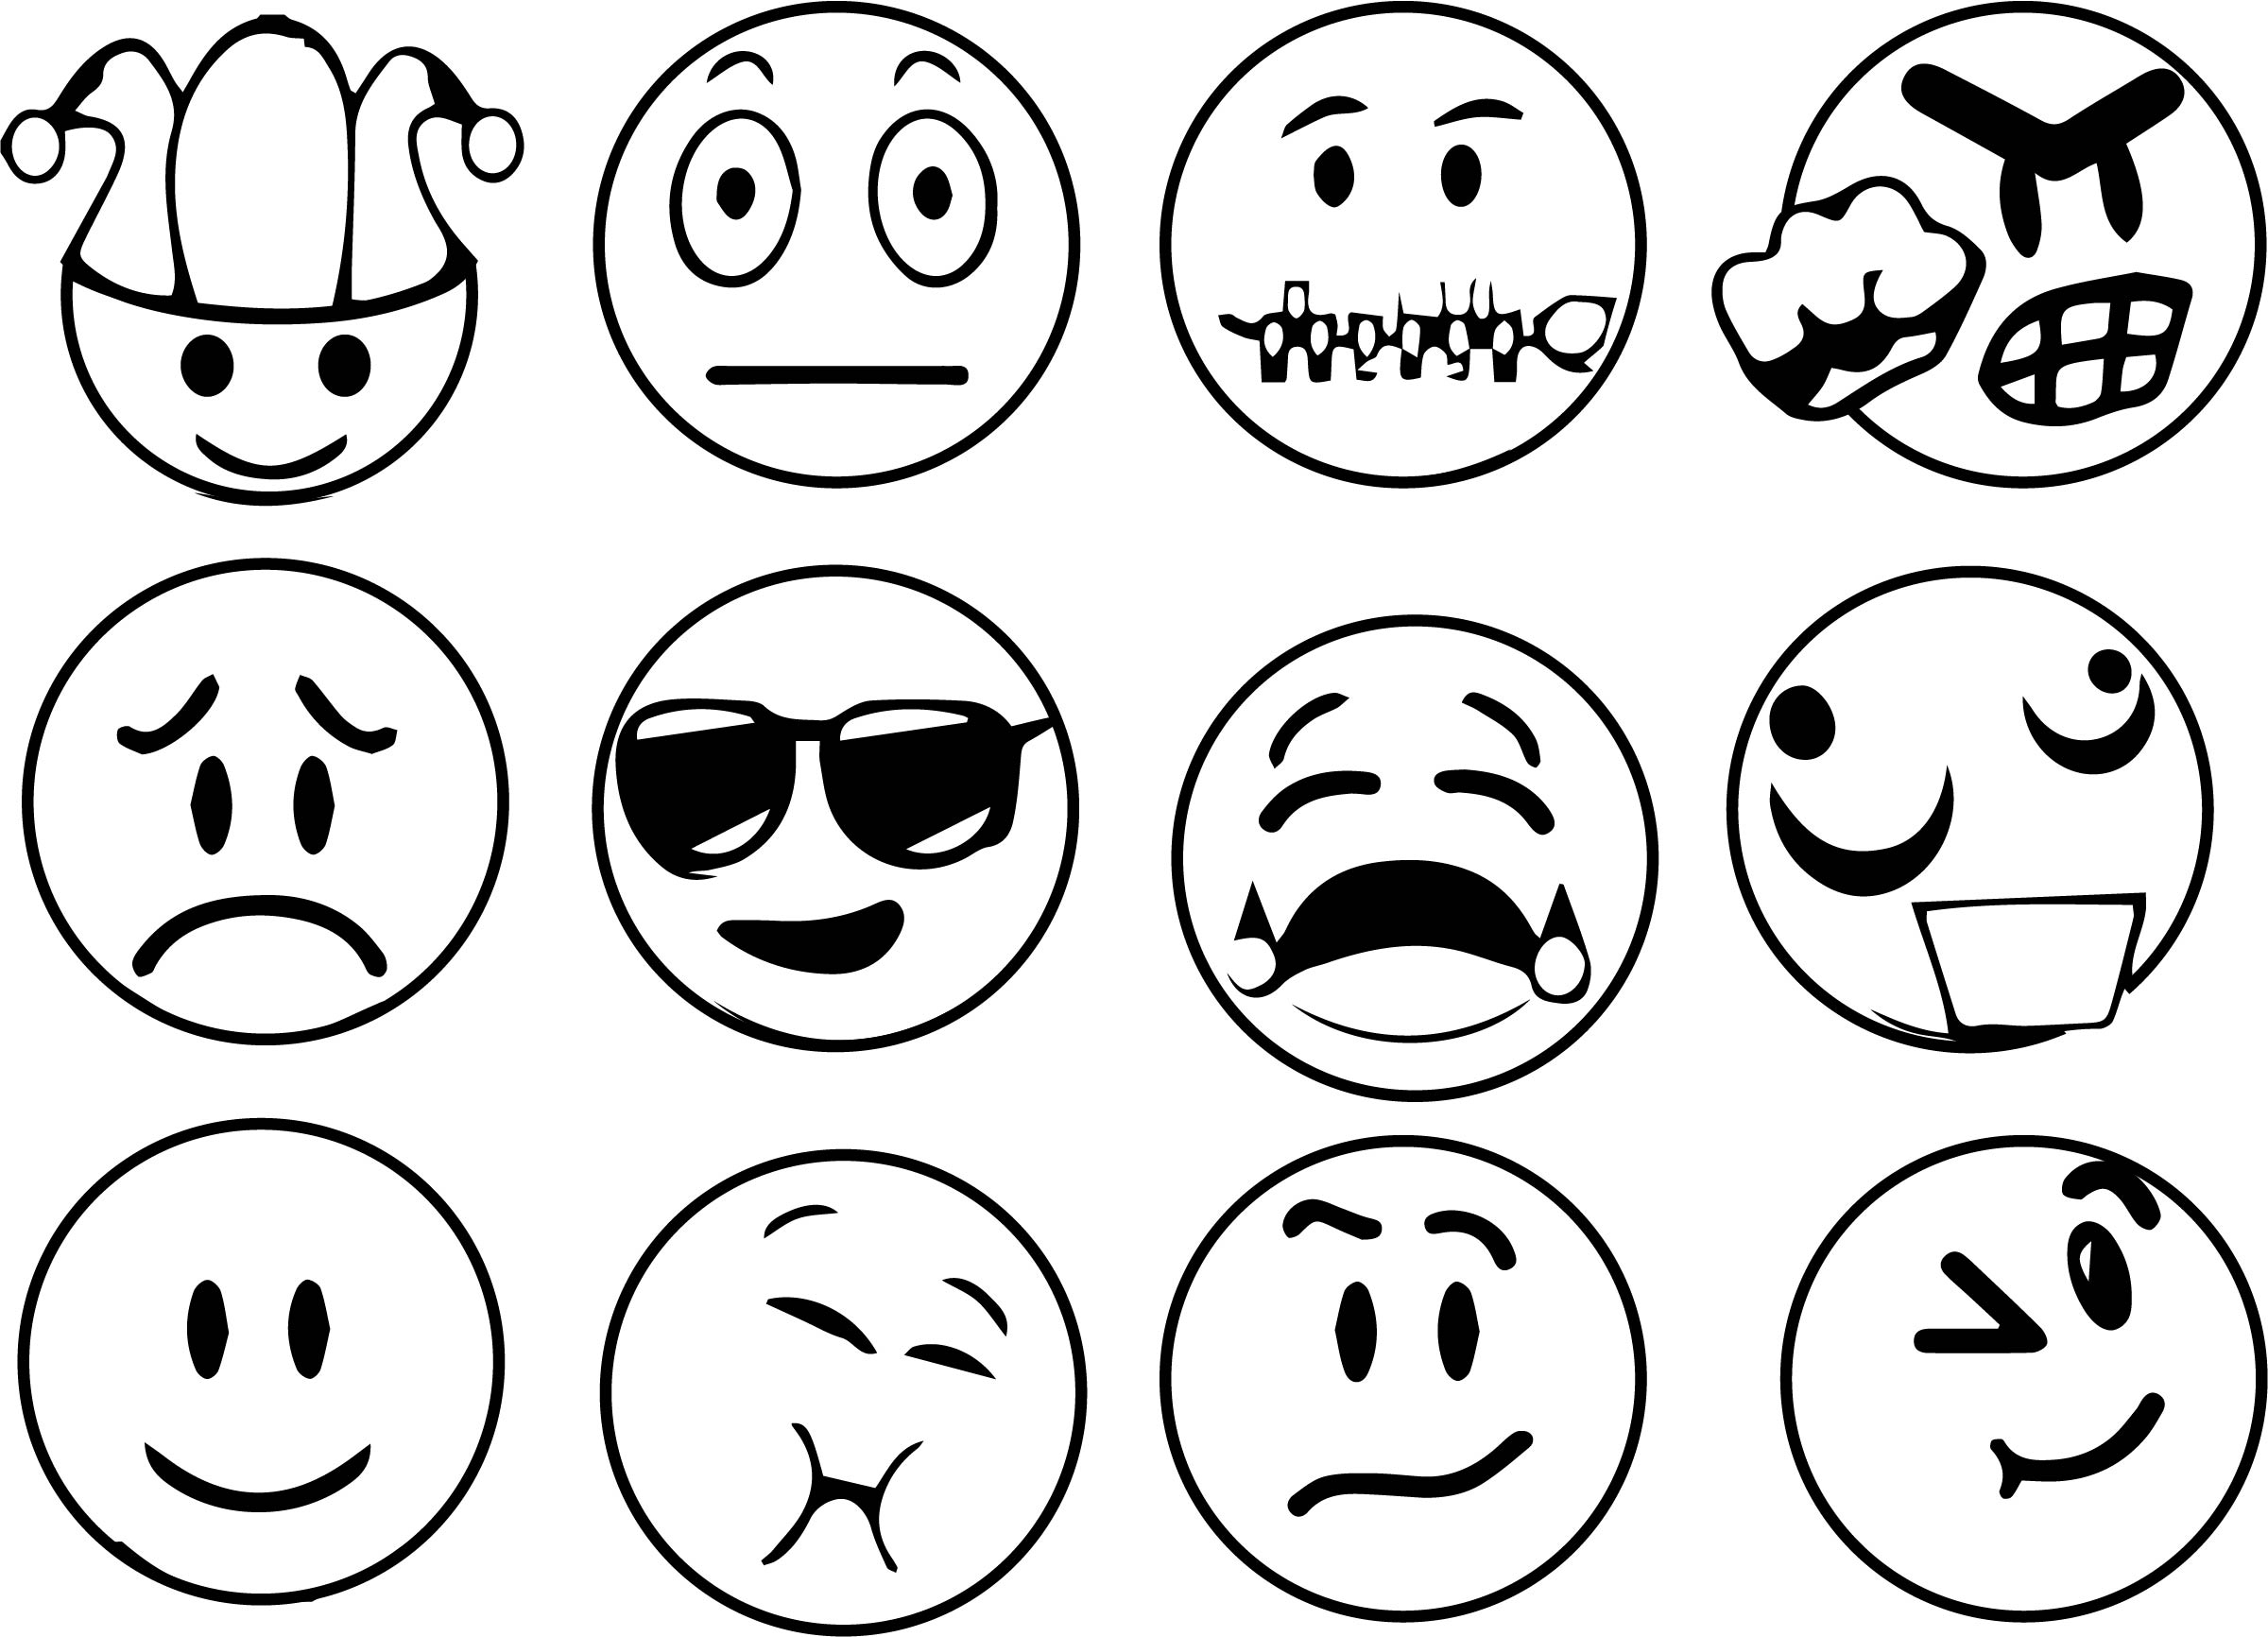 emoticons all face time coloring page